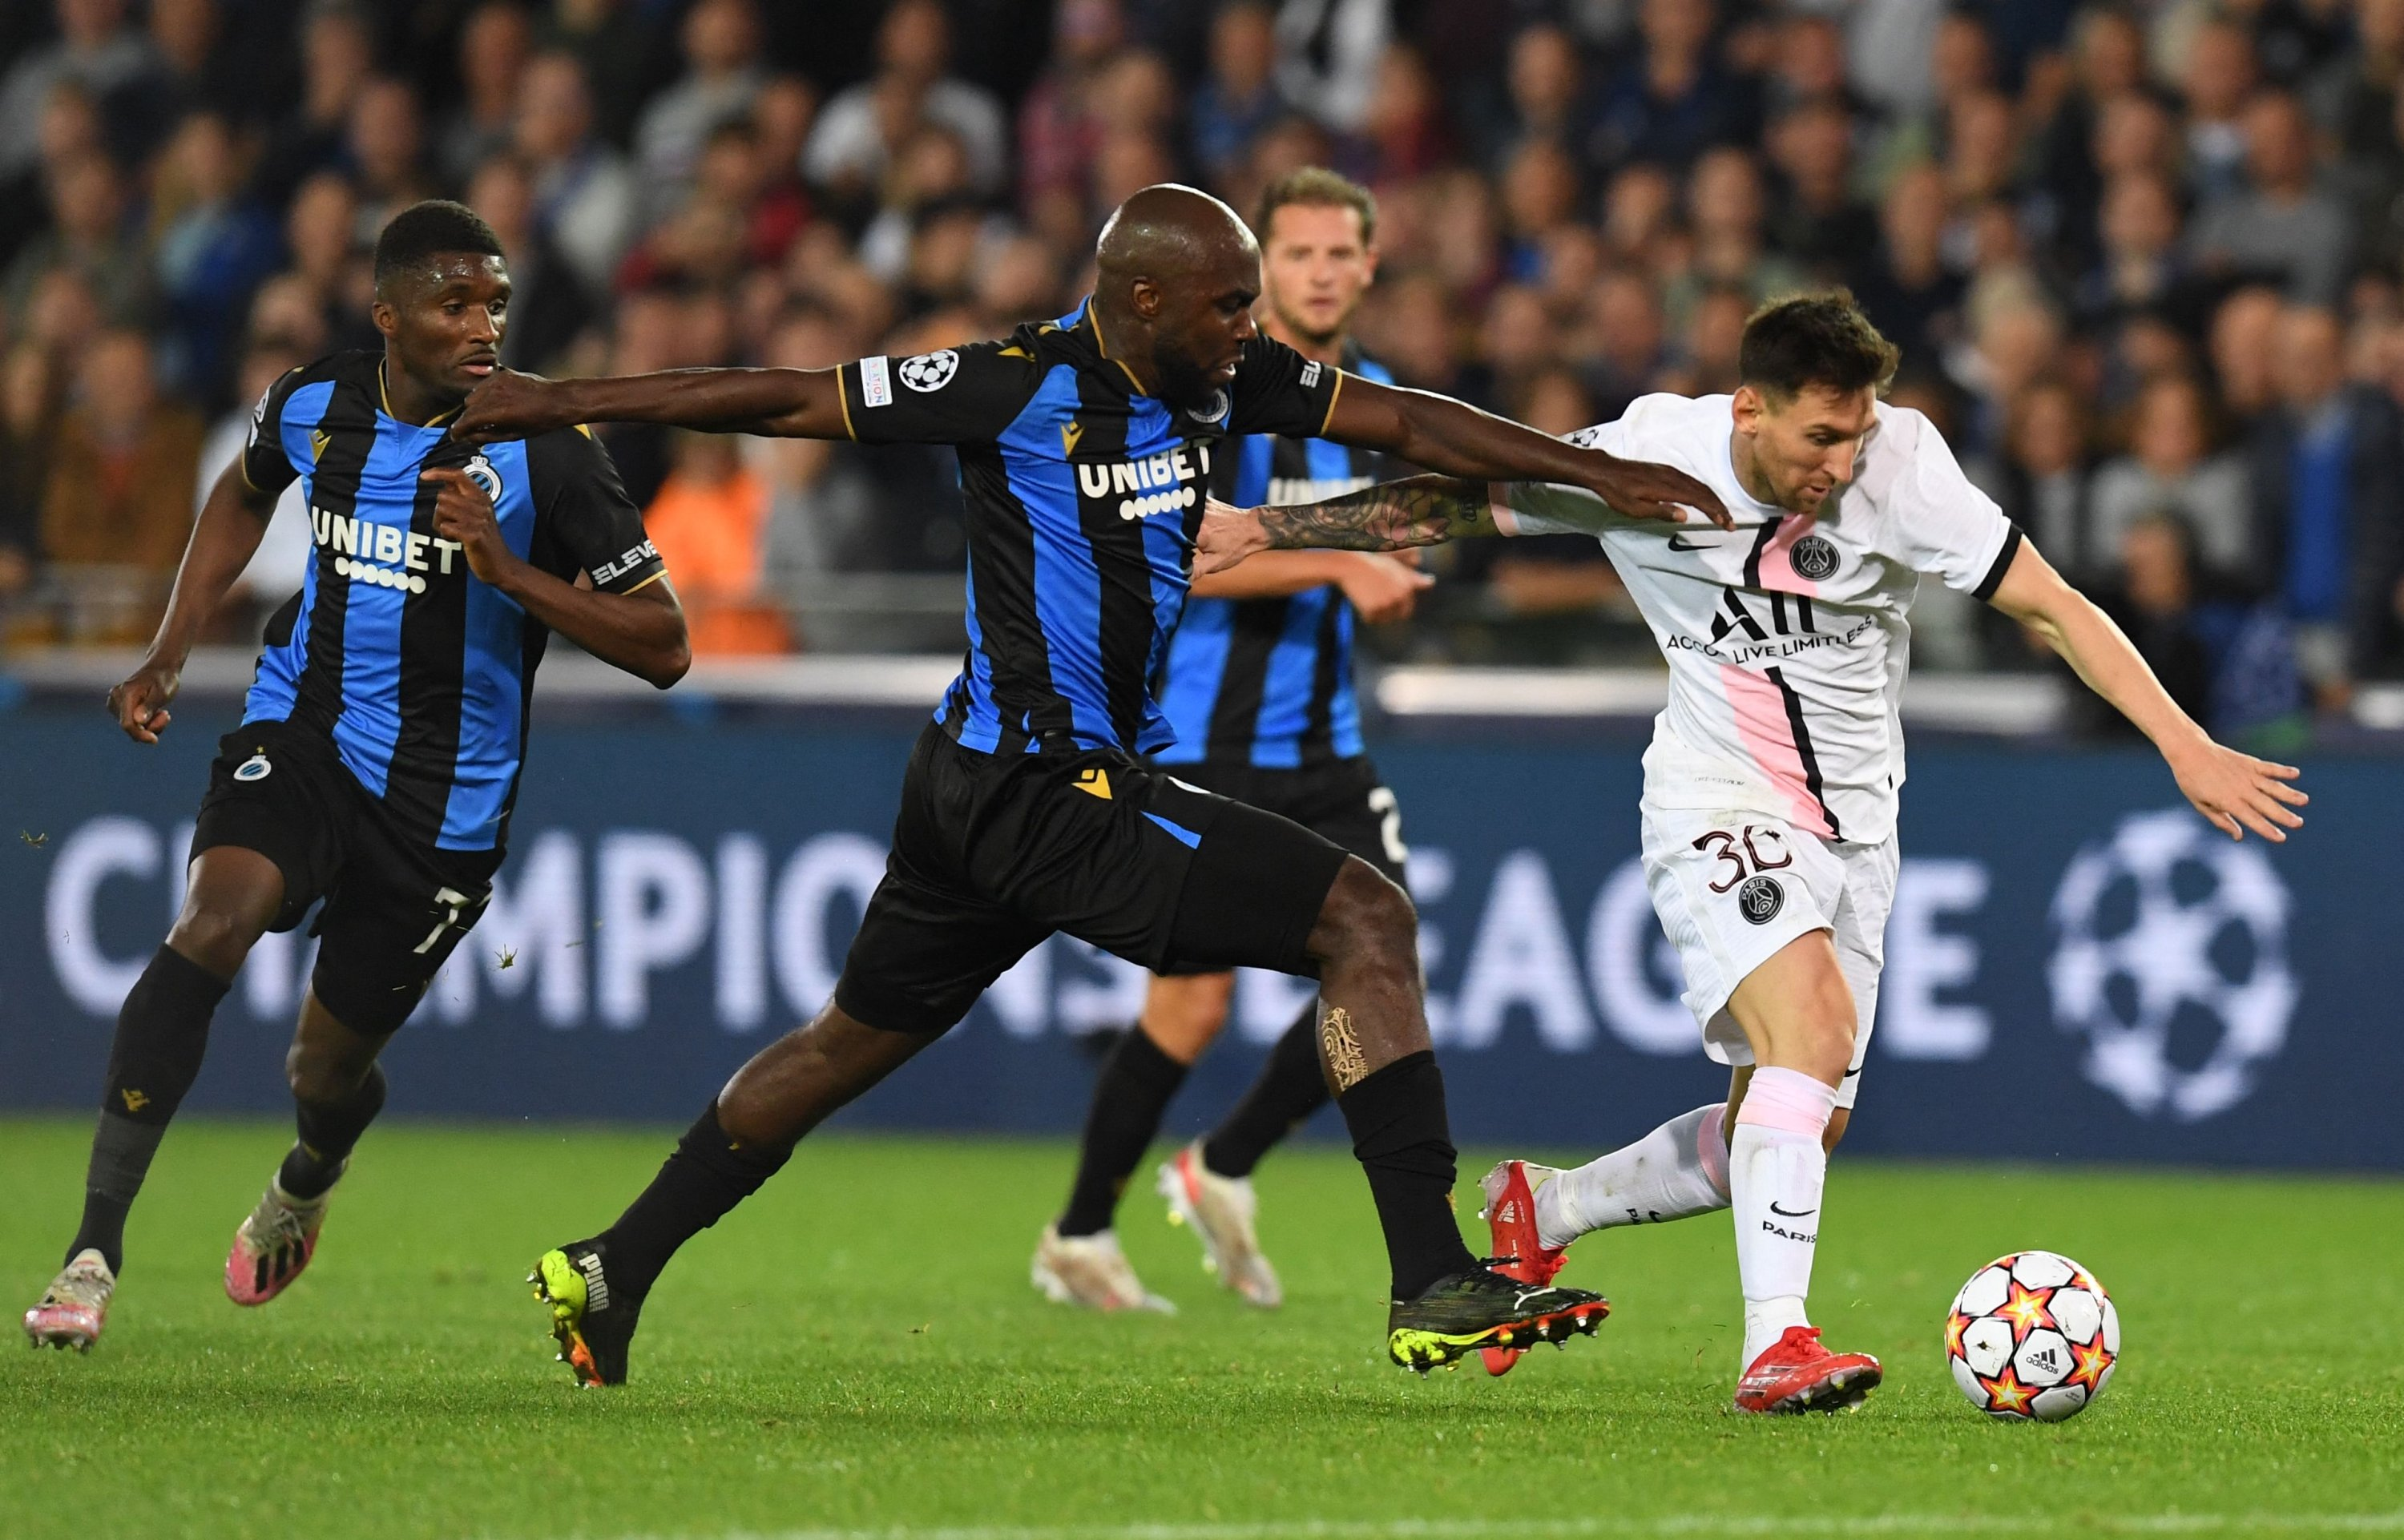 Paris Saint-Germain's Lionel Messi (R) fights for the ball with Club Brugge's Eder Alvarez Balanta during the Champions League Group A football match between Club Brugge and Paris Saint-Germain at the Jan Breydel Stadium in Bruges, Belgium, Sept. 15, 2021. (AFP Photo)